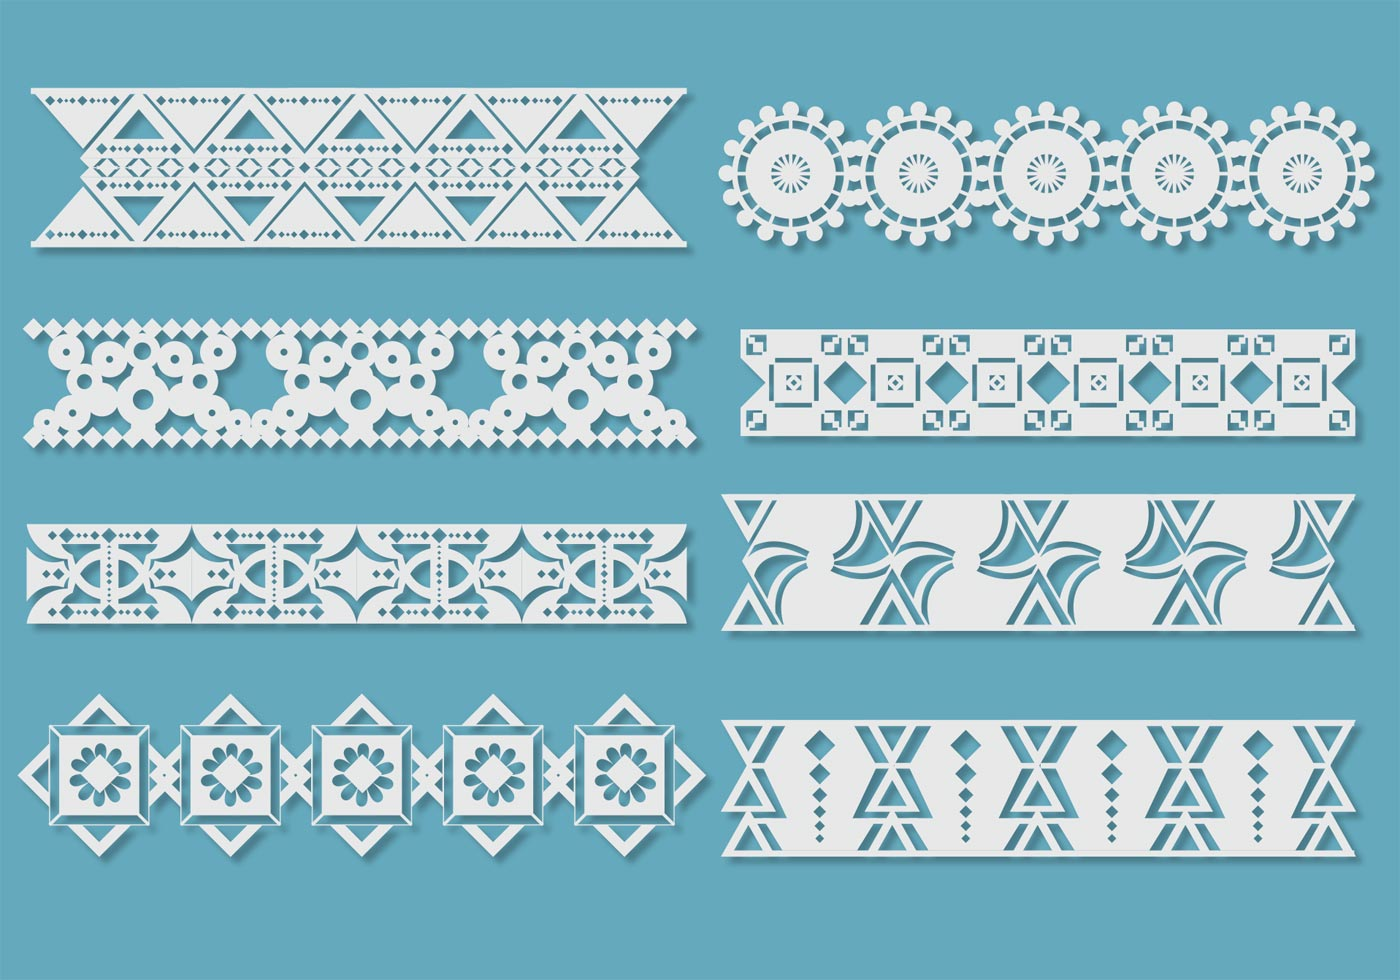 Crocheting Vector : Crochet Lace Vectors - Download Free Vector Art, Stock Graphics ...